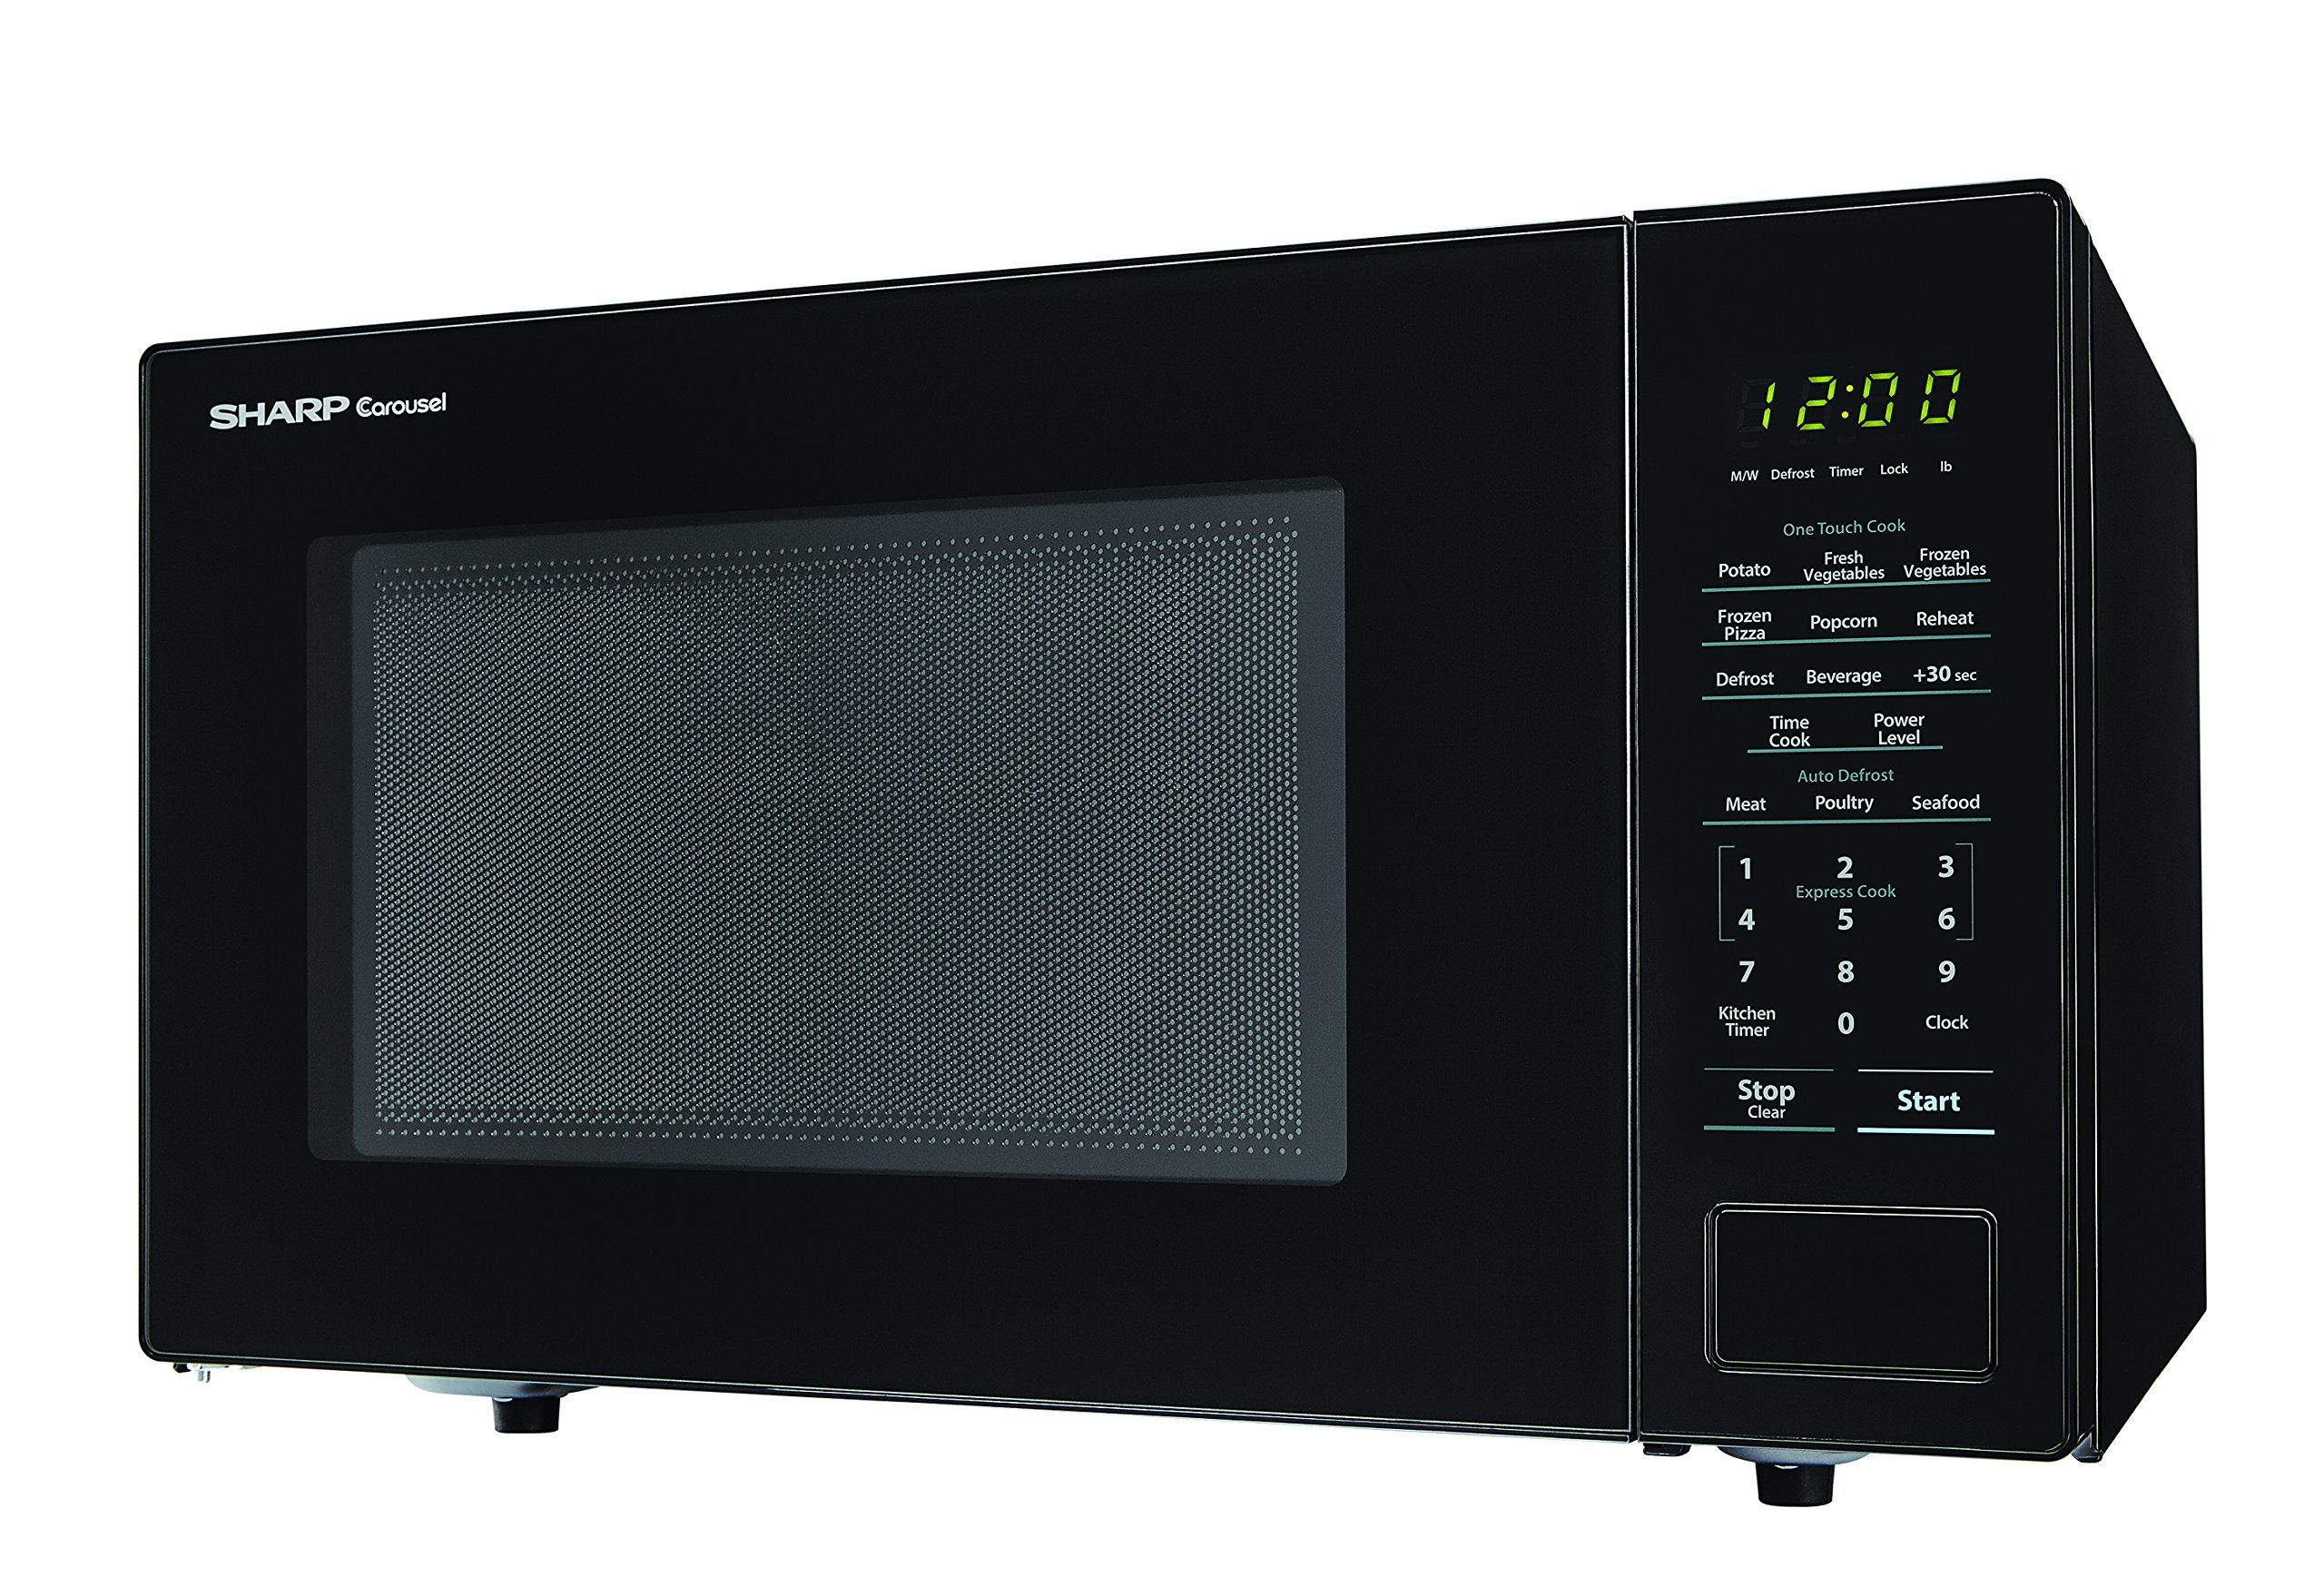 Sharp Microwaves Zsmc1131cb Sharp 1000w Countertop Microwave Oven 1 1 Cubic Foot Black To V Countertop Microwave Oven Countertop Microwave Sharp Appliances